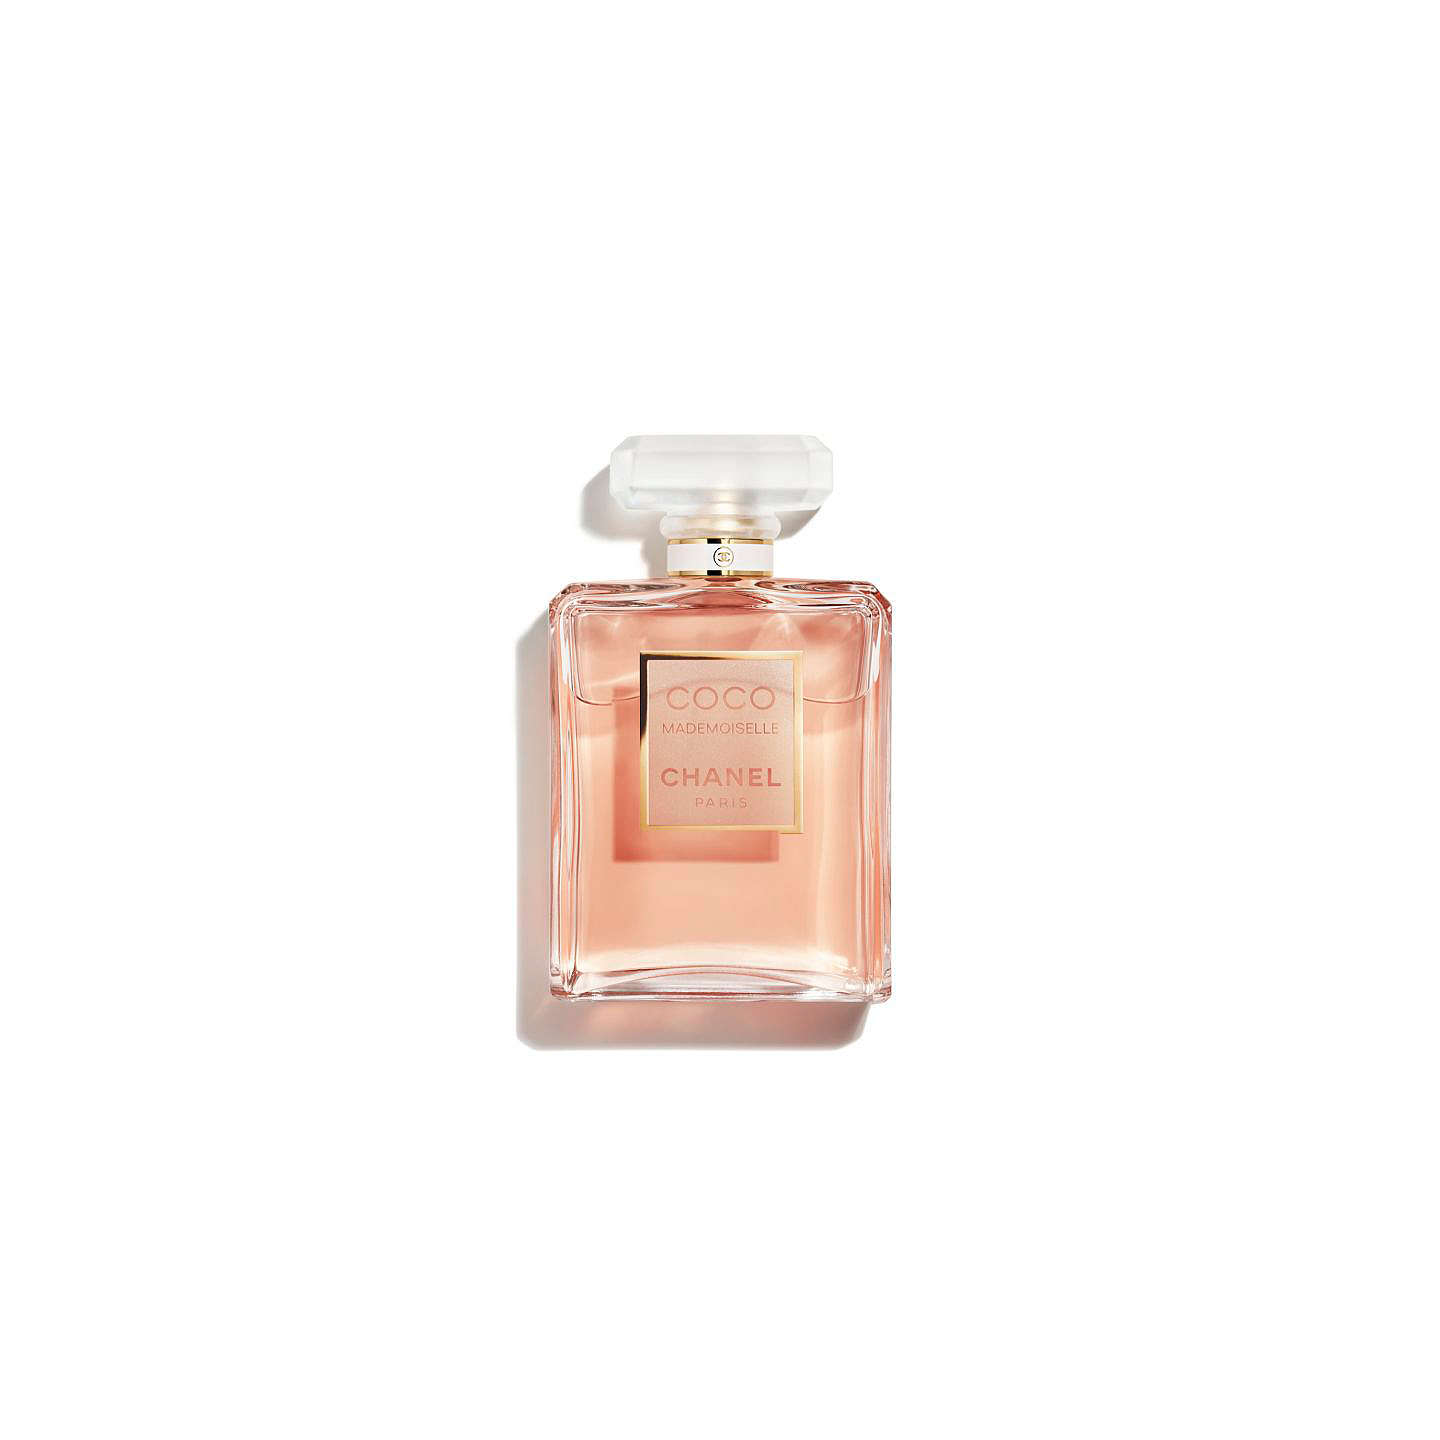 CHANEL COCO MADEMOISELLE Eau De Parfum Spray at John Lewis